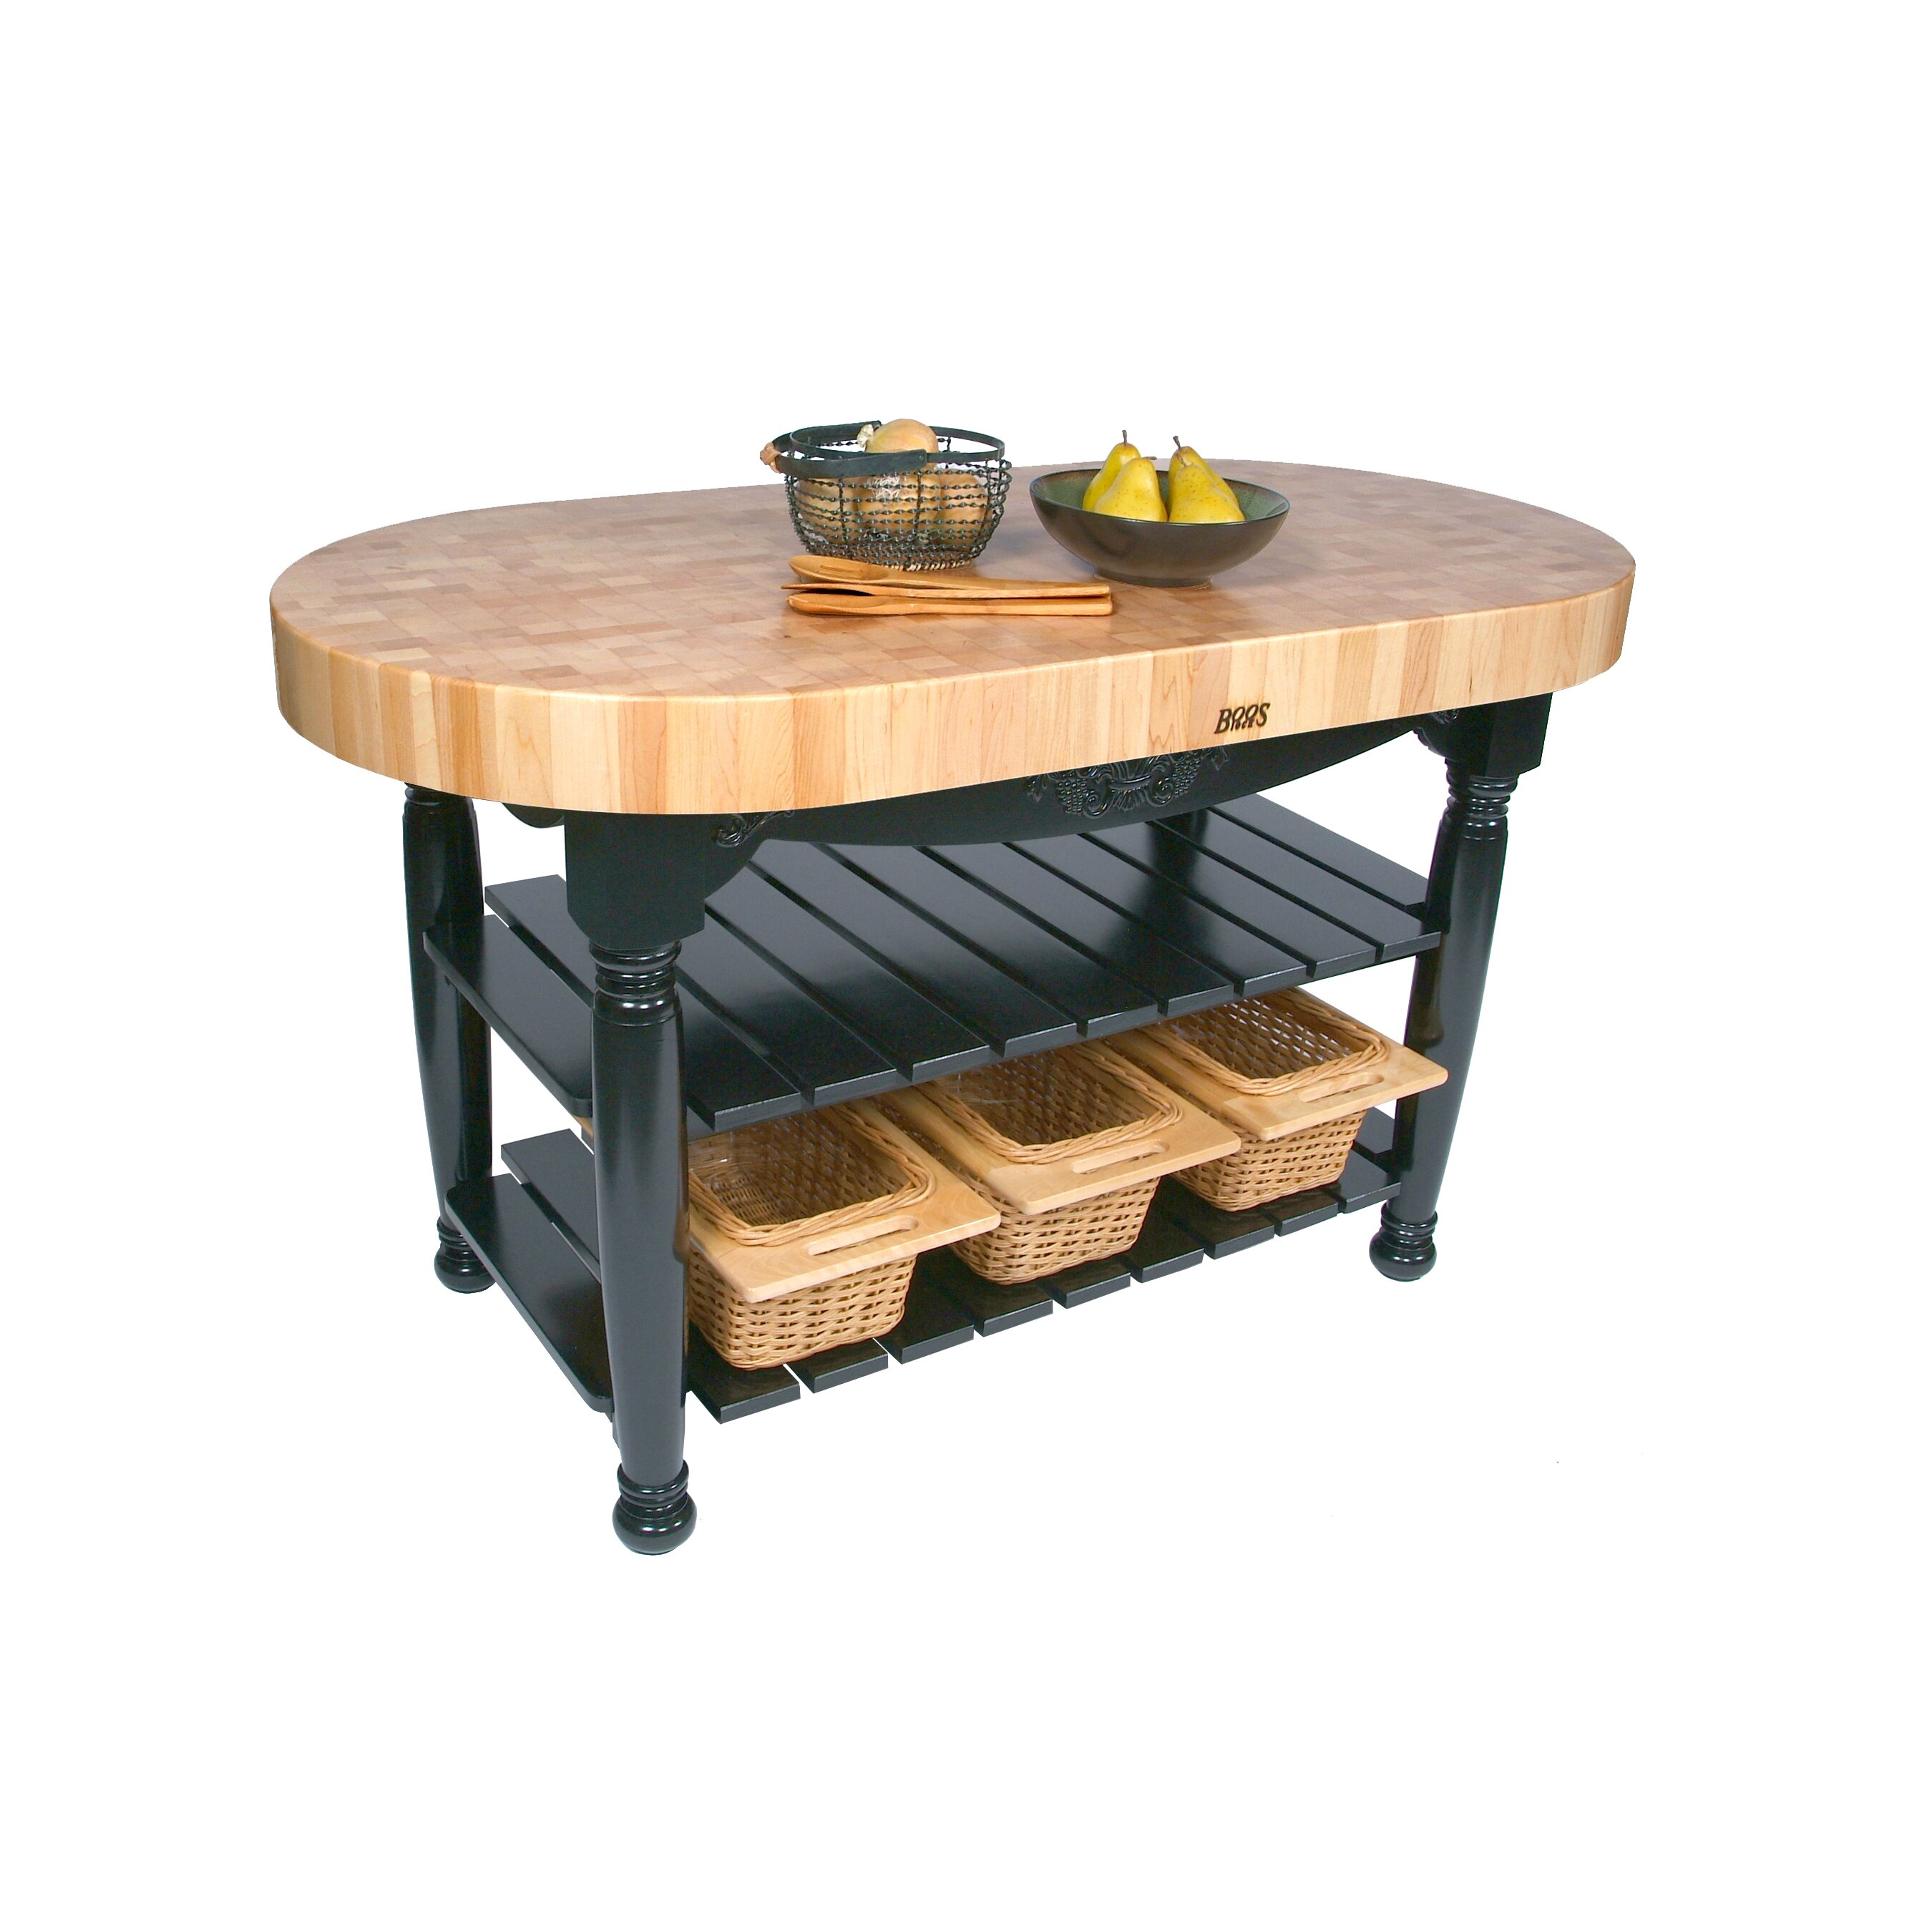 Buy Butcher Block Table Top: John Boos American Heritage Prep Table With Butcher Block